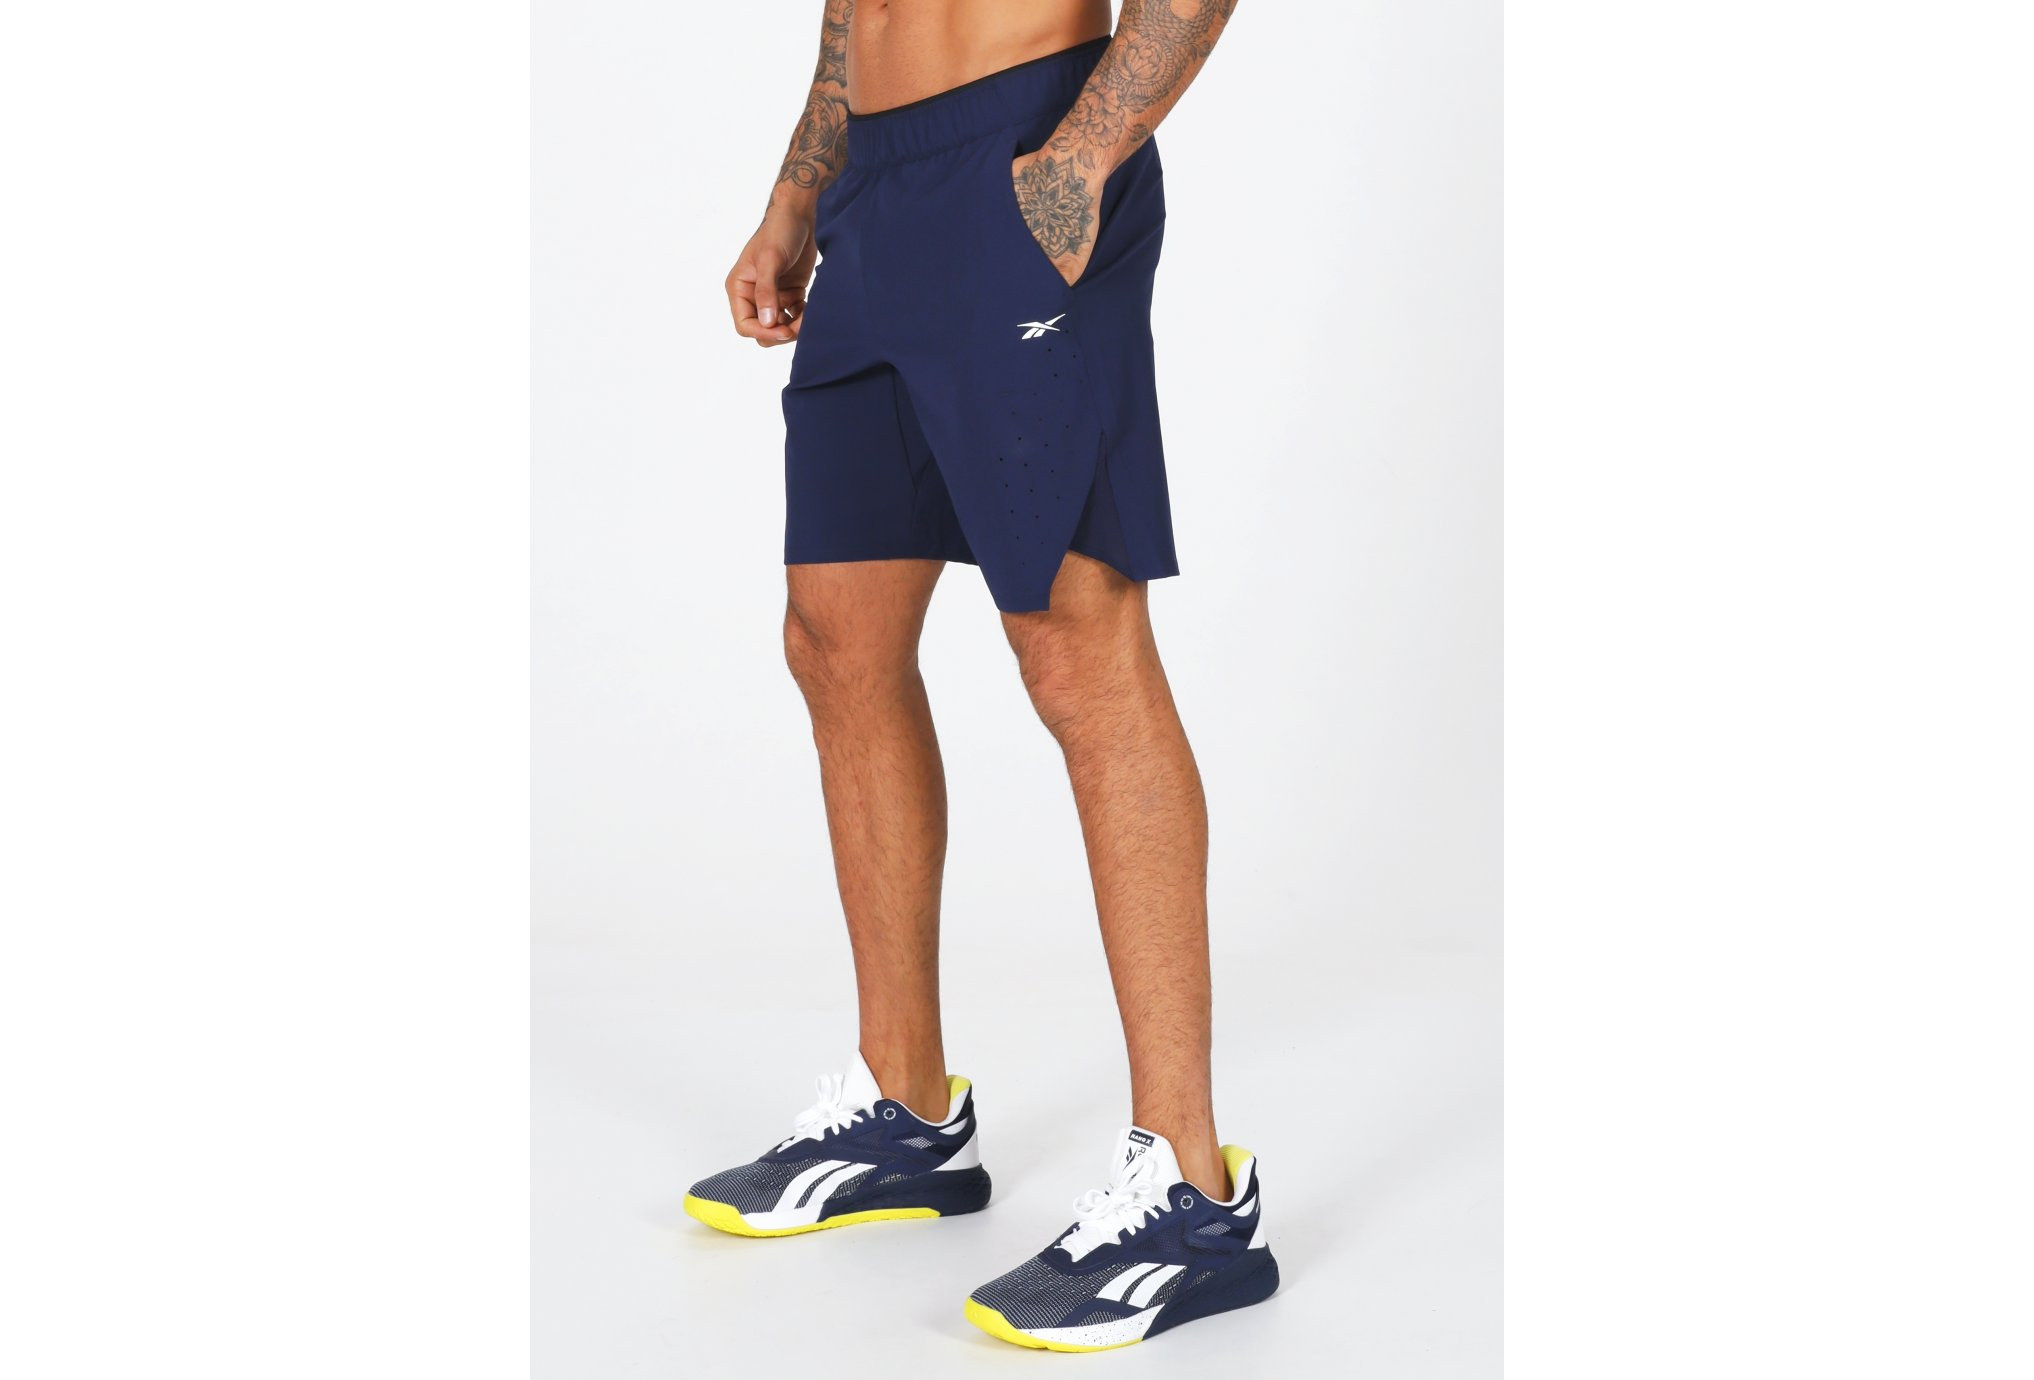 Reebok Epic United By Fitness M vêtement running homme